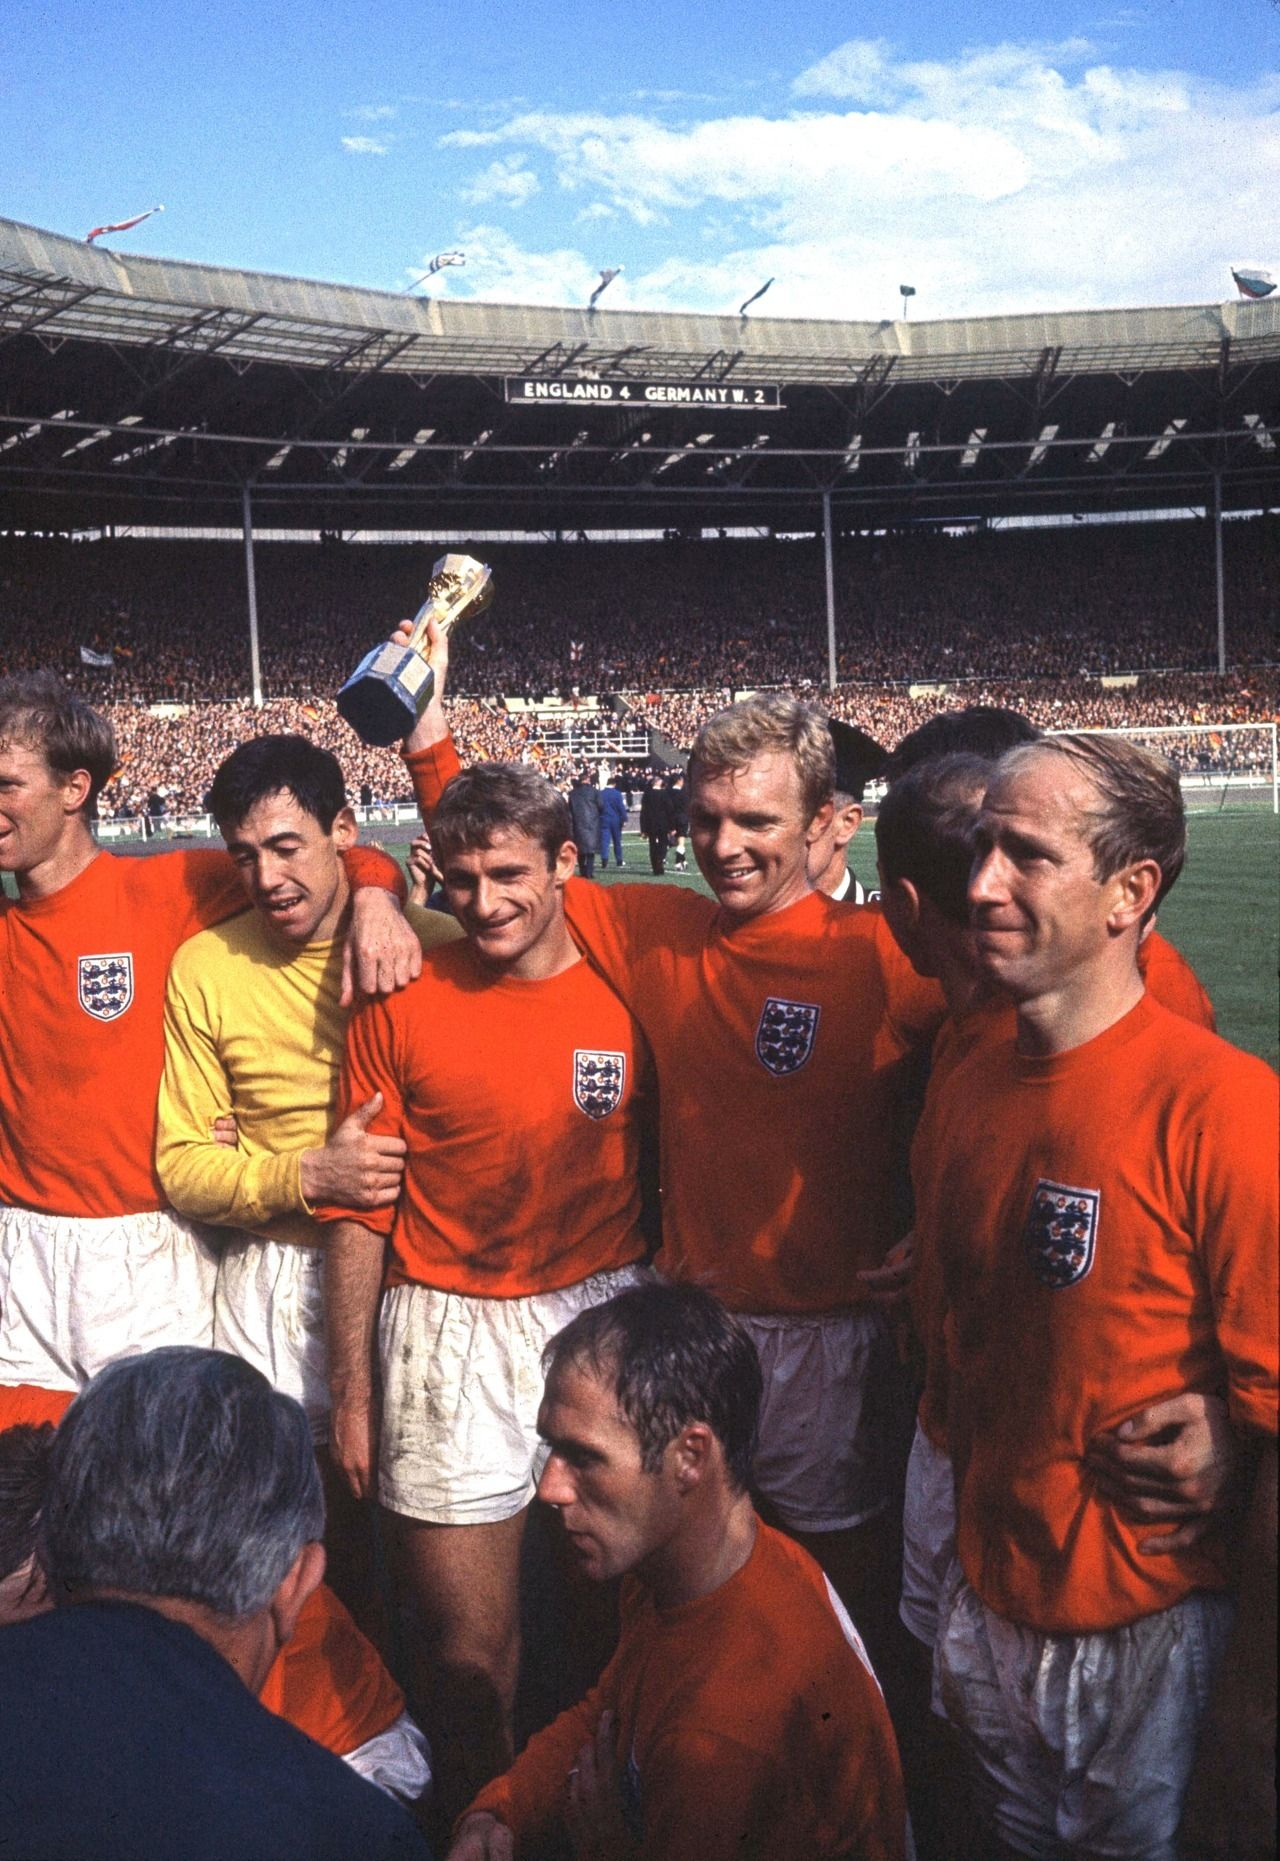 World Cup Final 1966 In 2020 England Football Team England Football Players England Football